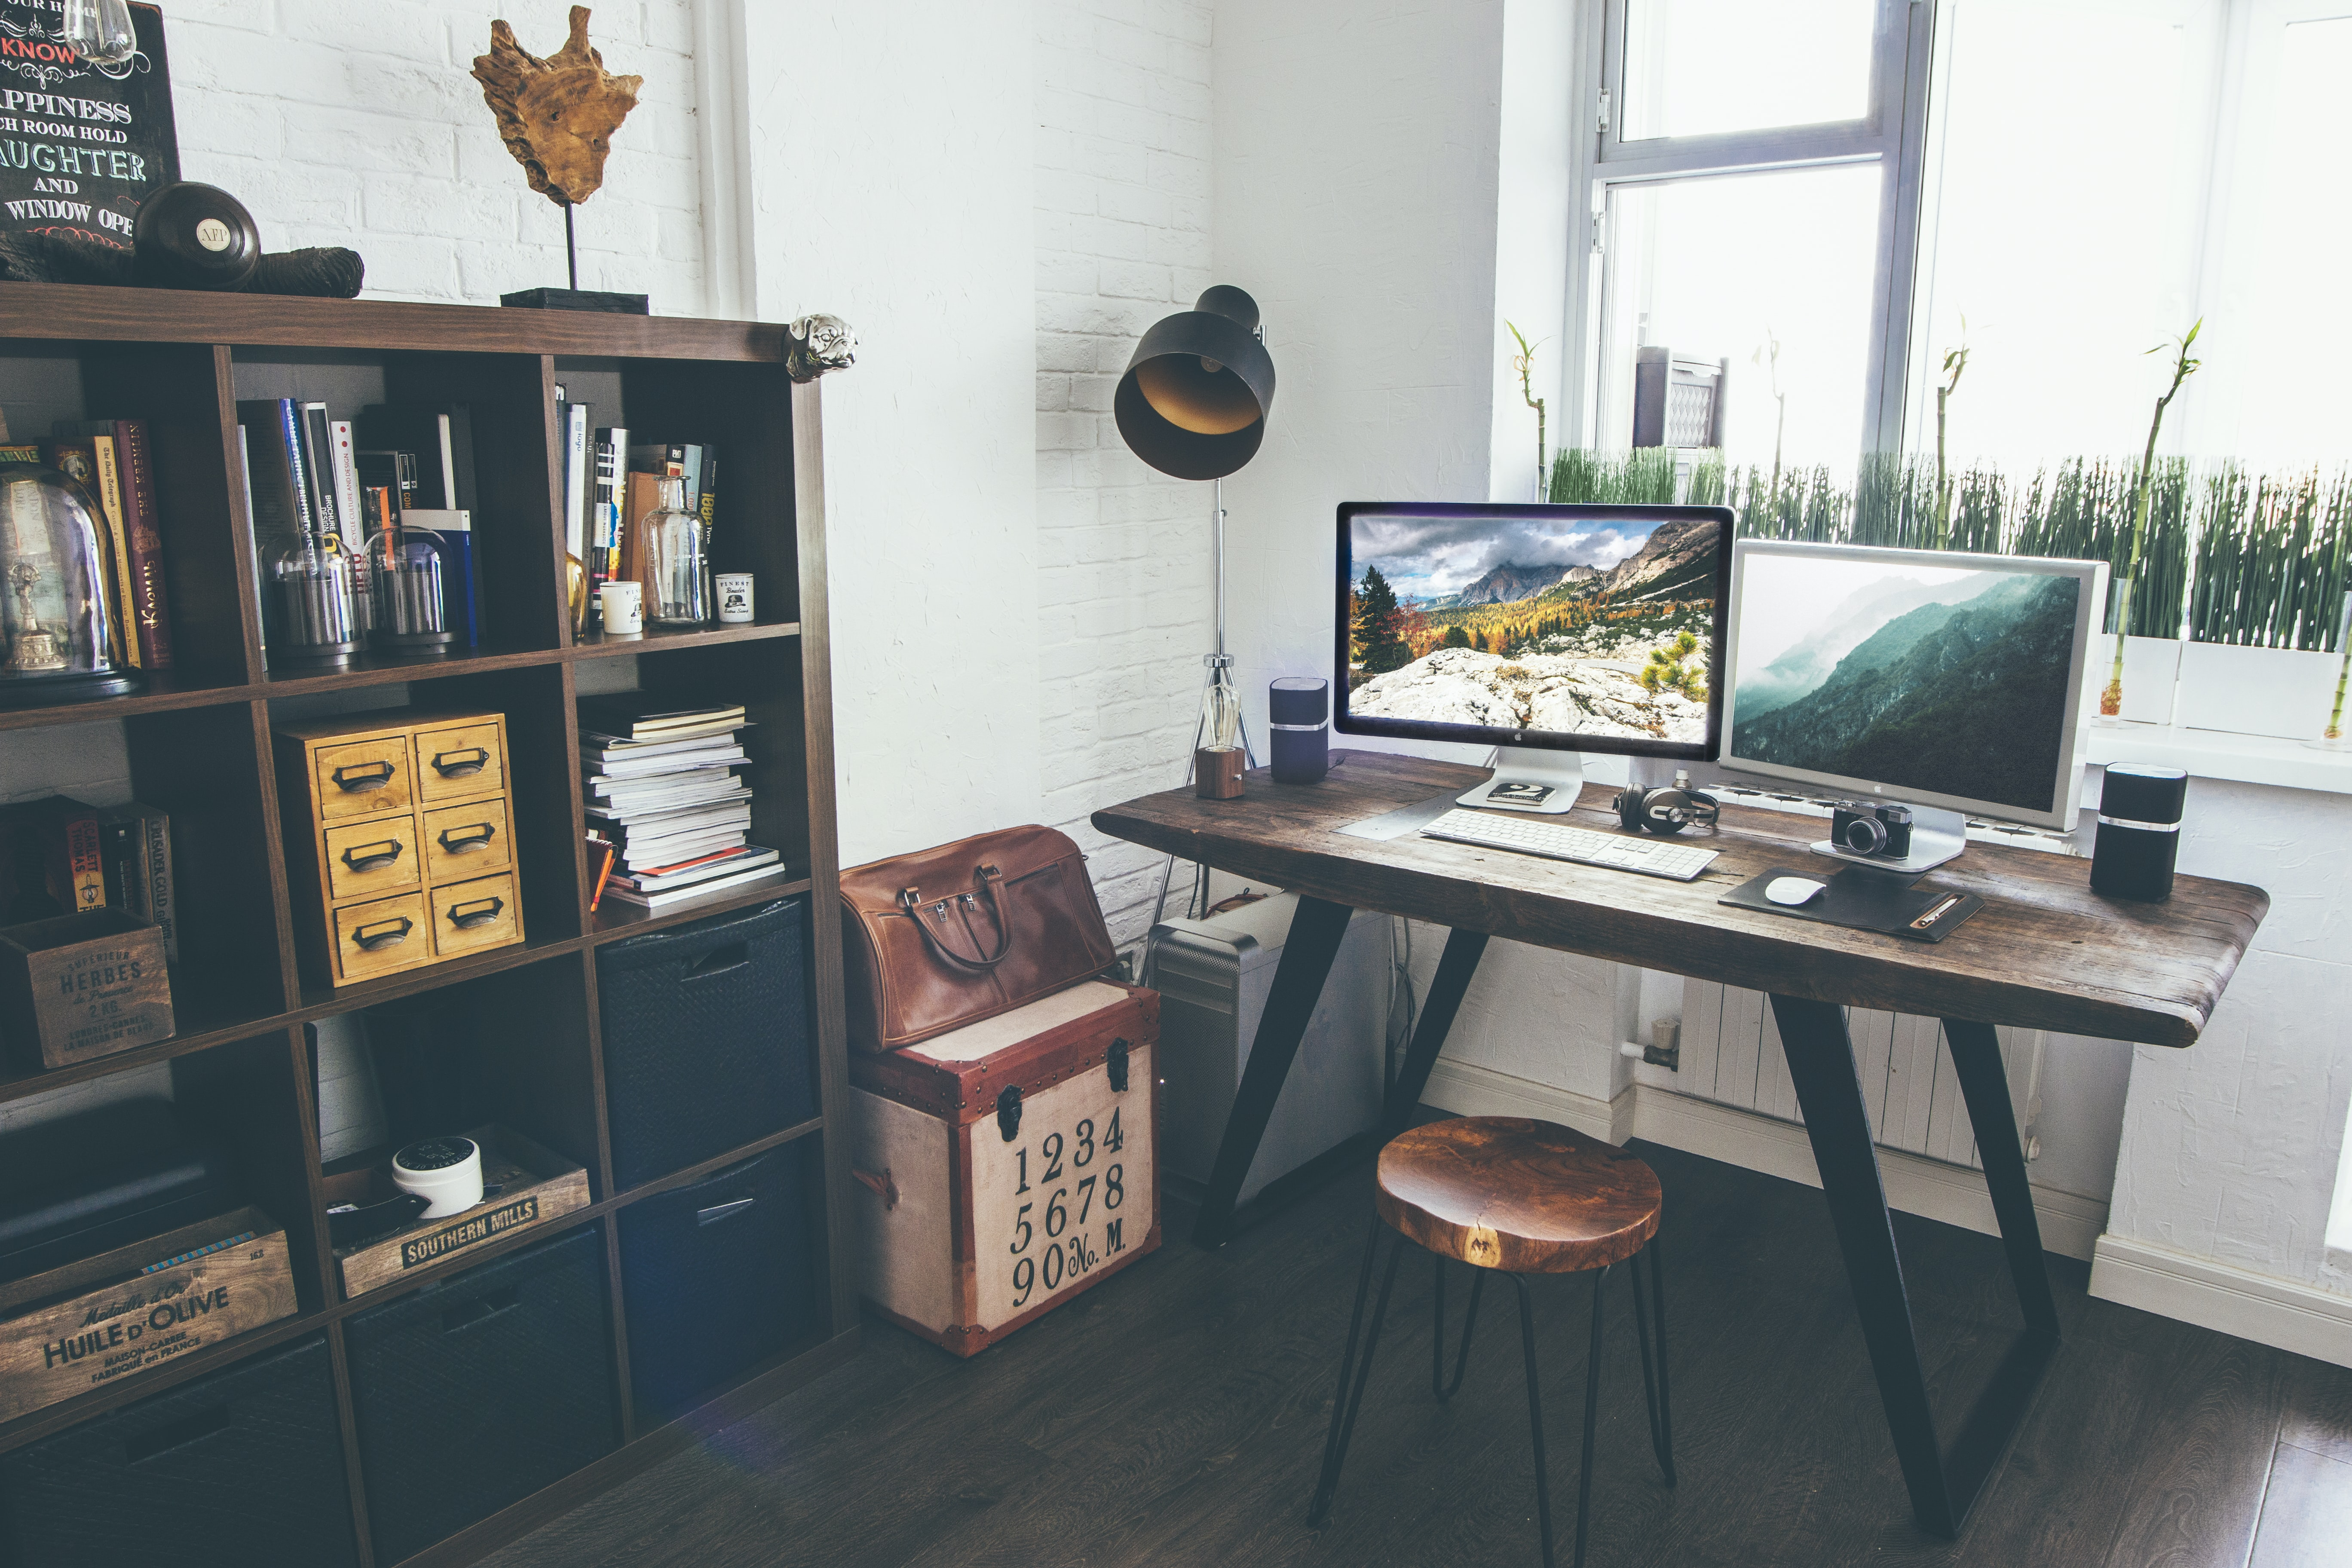 Two iMacs on a desk in a vintage-style home office